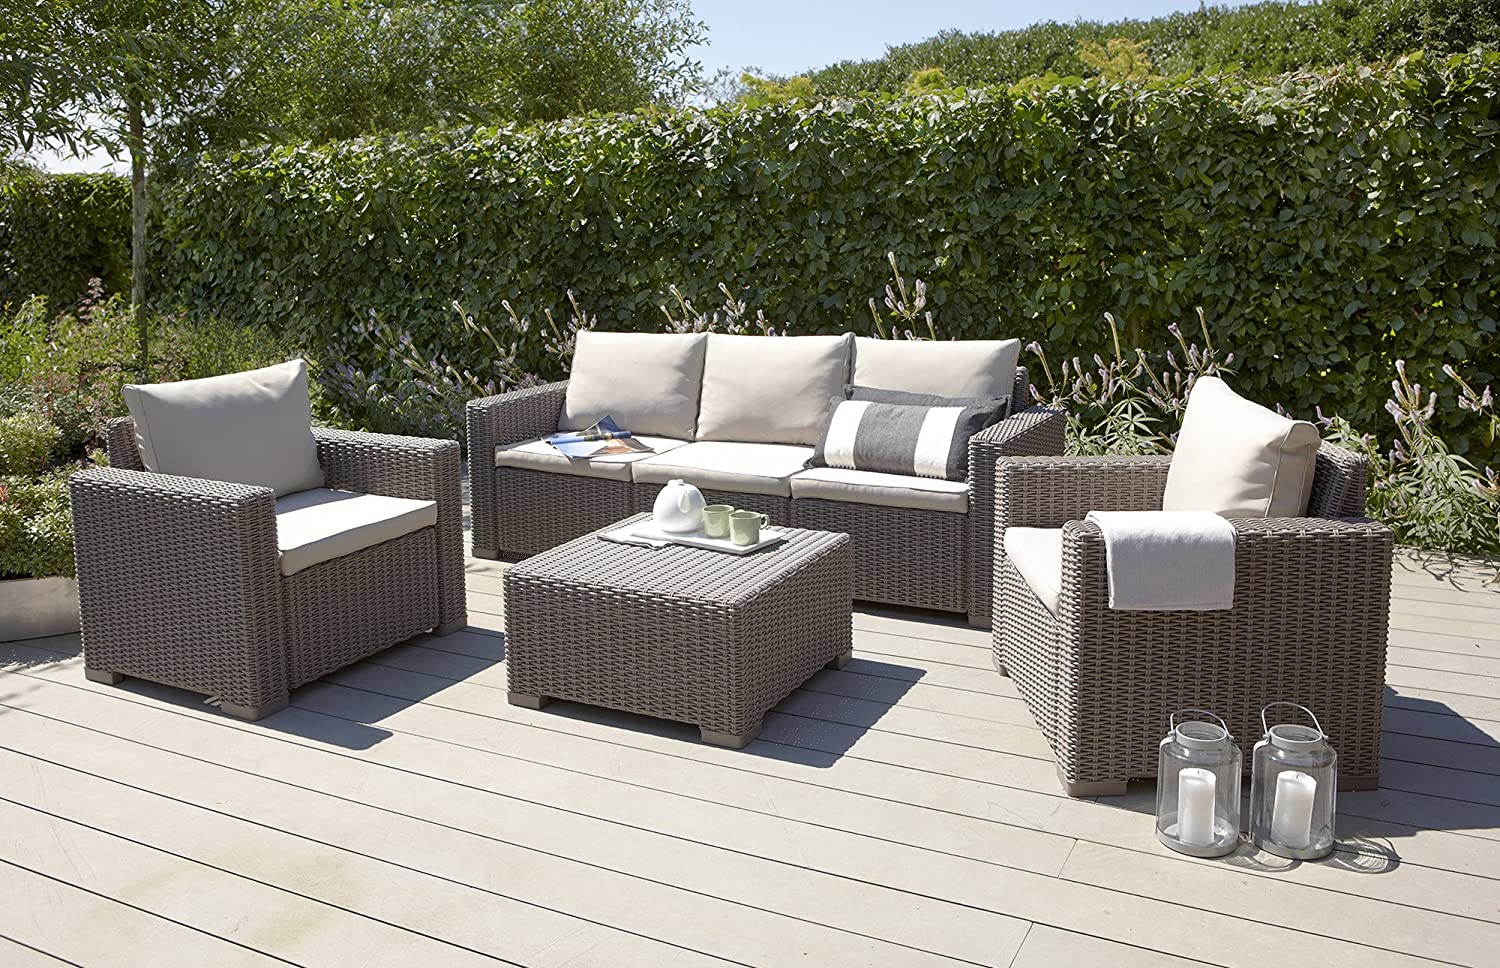 Rattan Look Outdoor Garden Lounge Set seats upto six: Amazon.ca